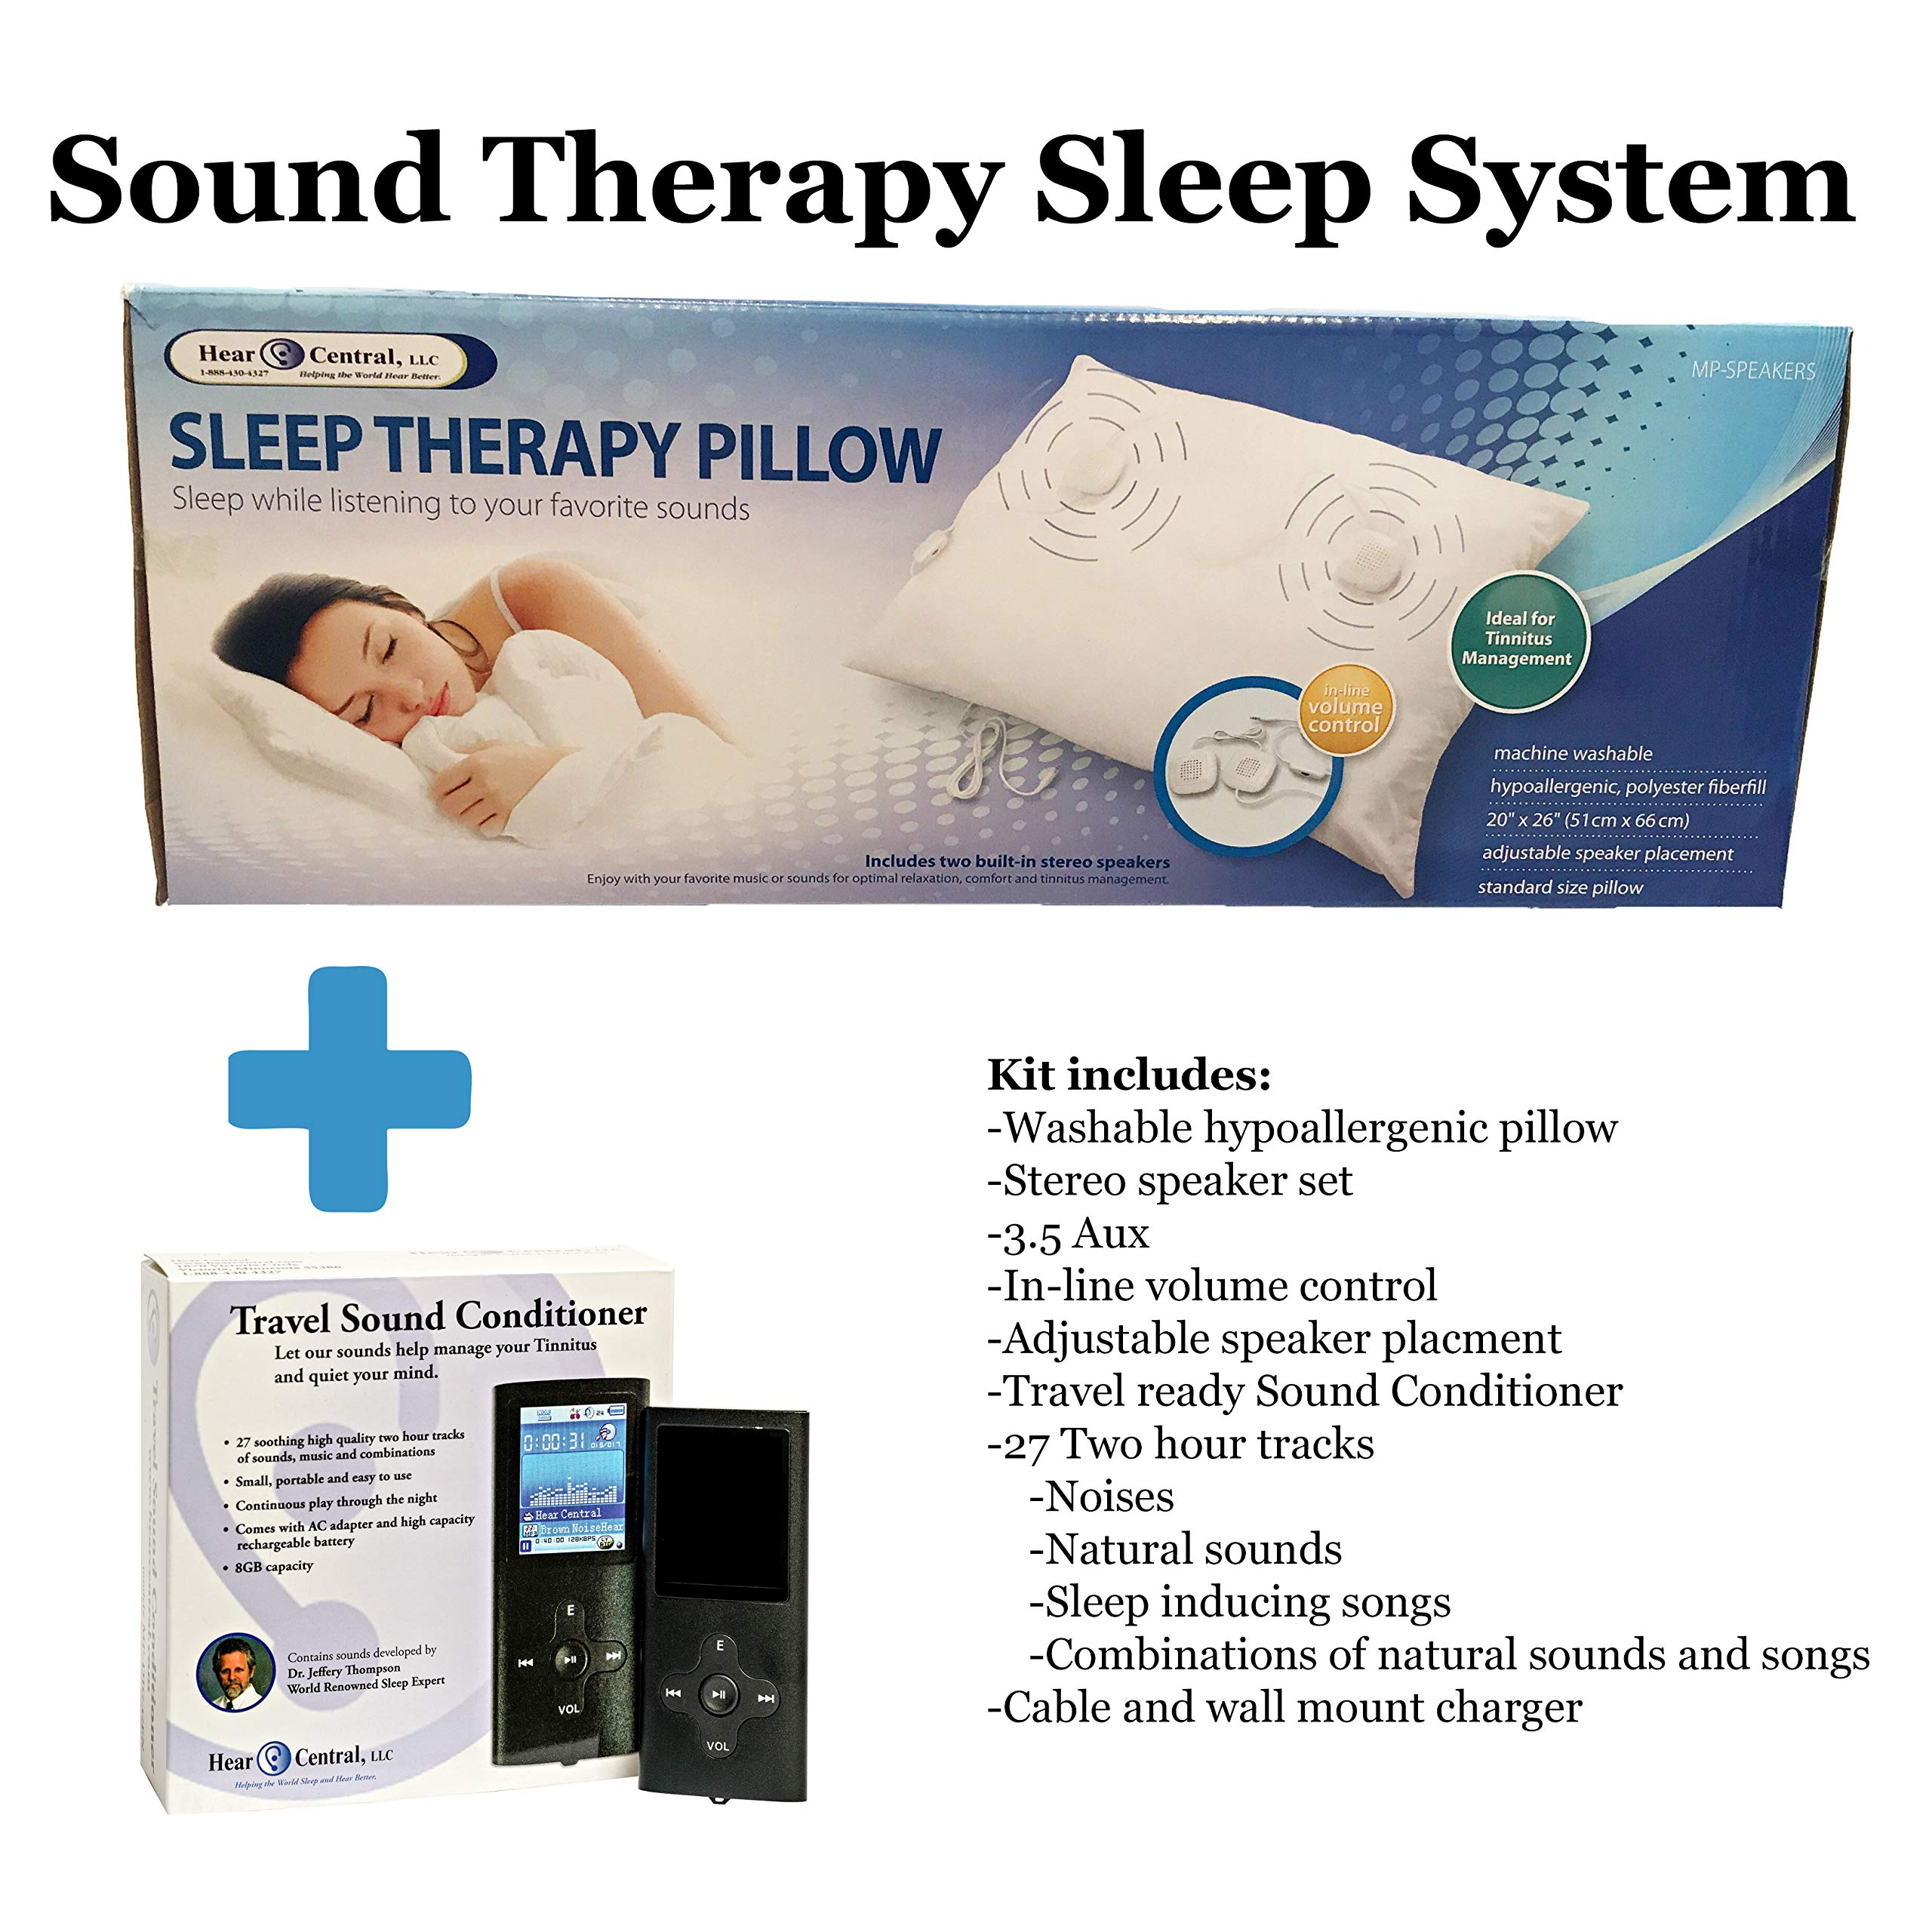 Sound Therapy Sleep System by Hear Central: Sleep Therapy, Tinnitus, Music Pillow, Travel Sound Conditioner, Helping The World Sleep Better